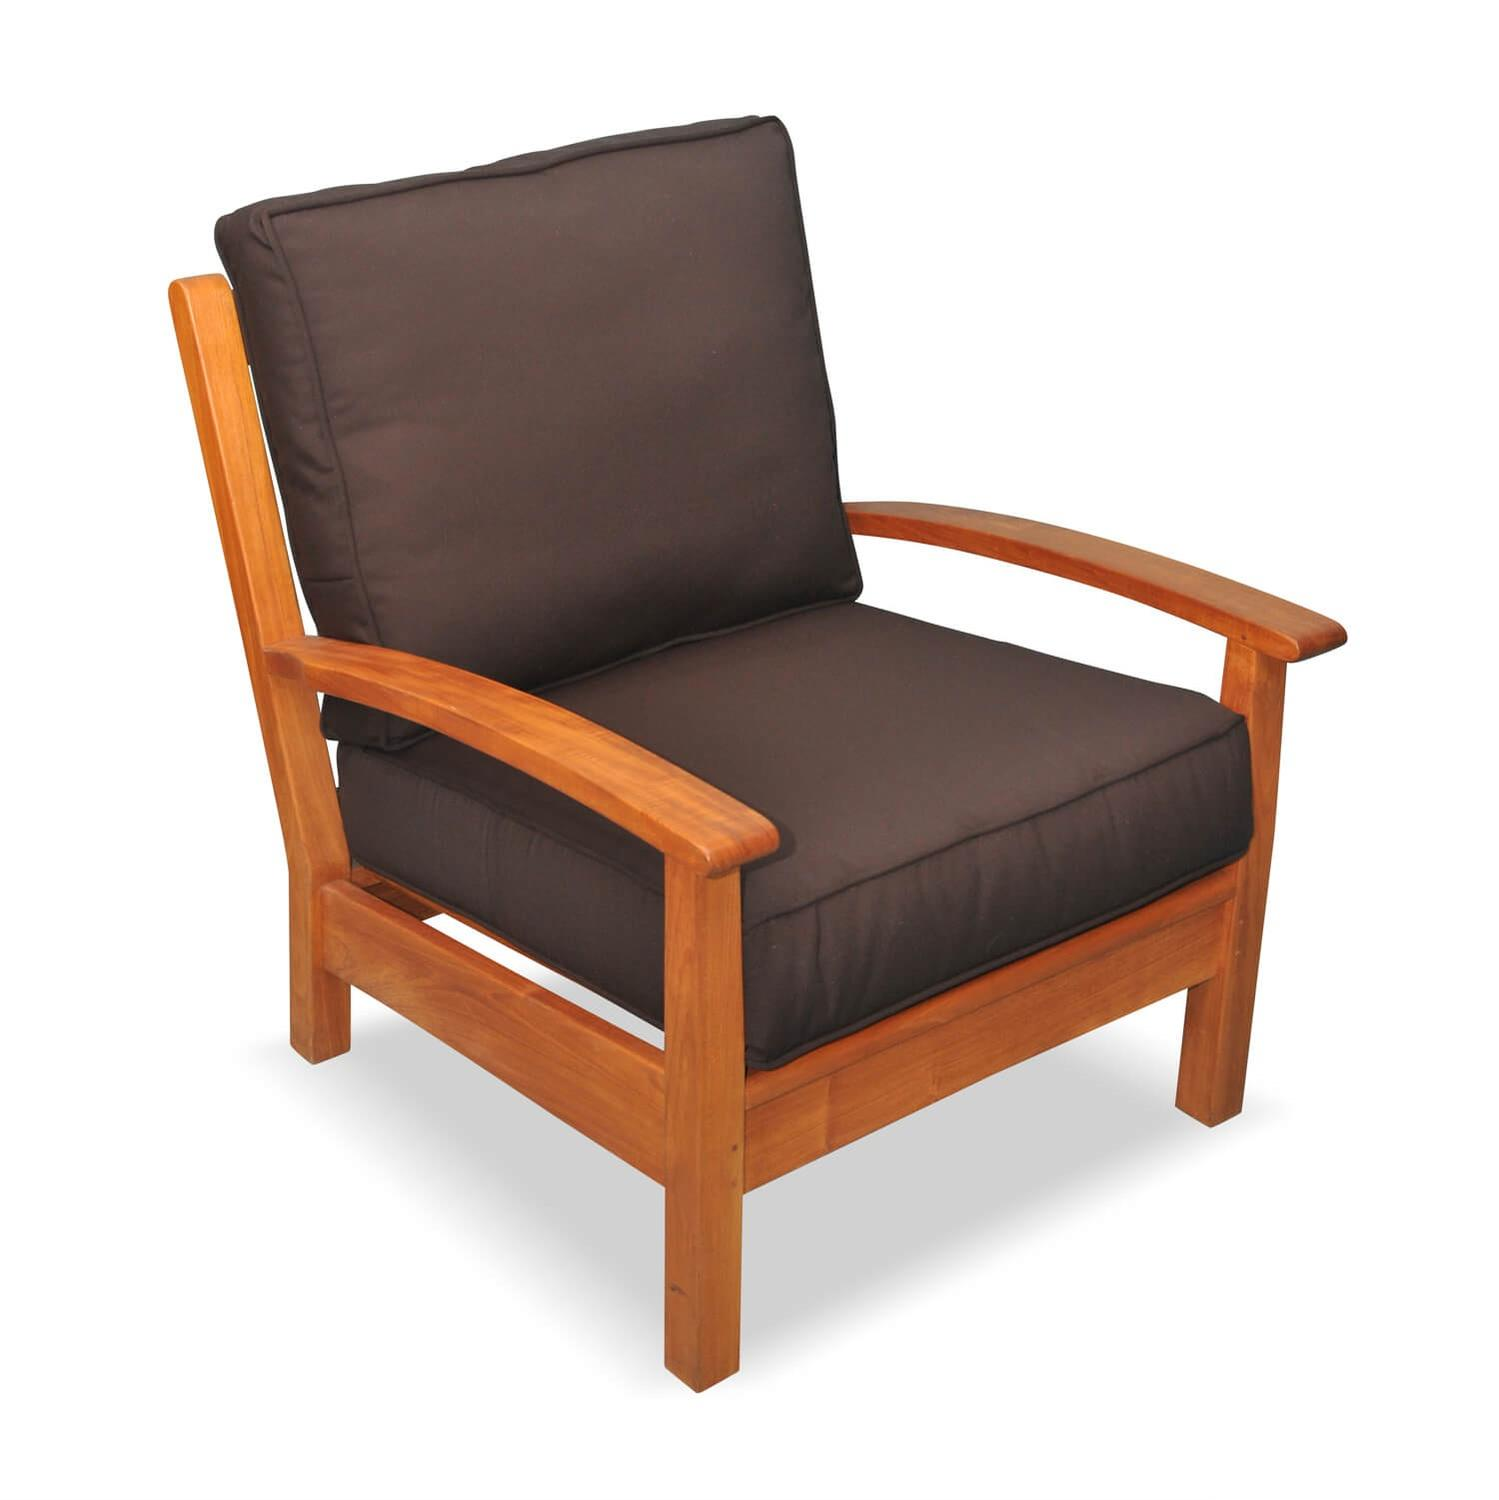 "34"" Natural Teak Deep Seating Outdoor Patio Lounge Chair with Brown Cushions"